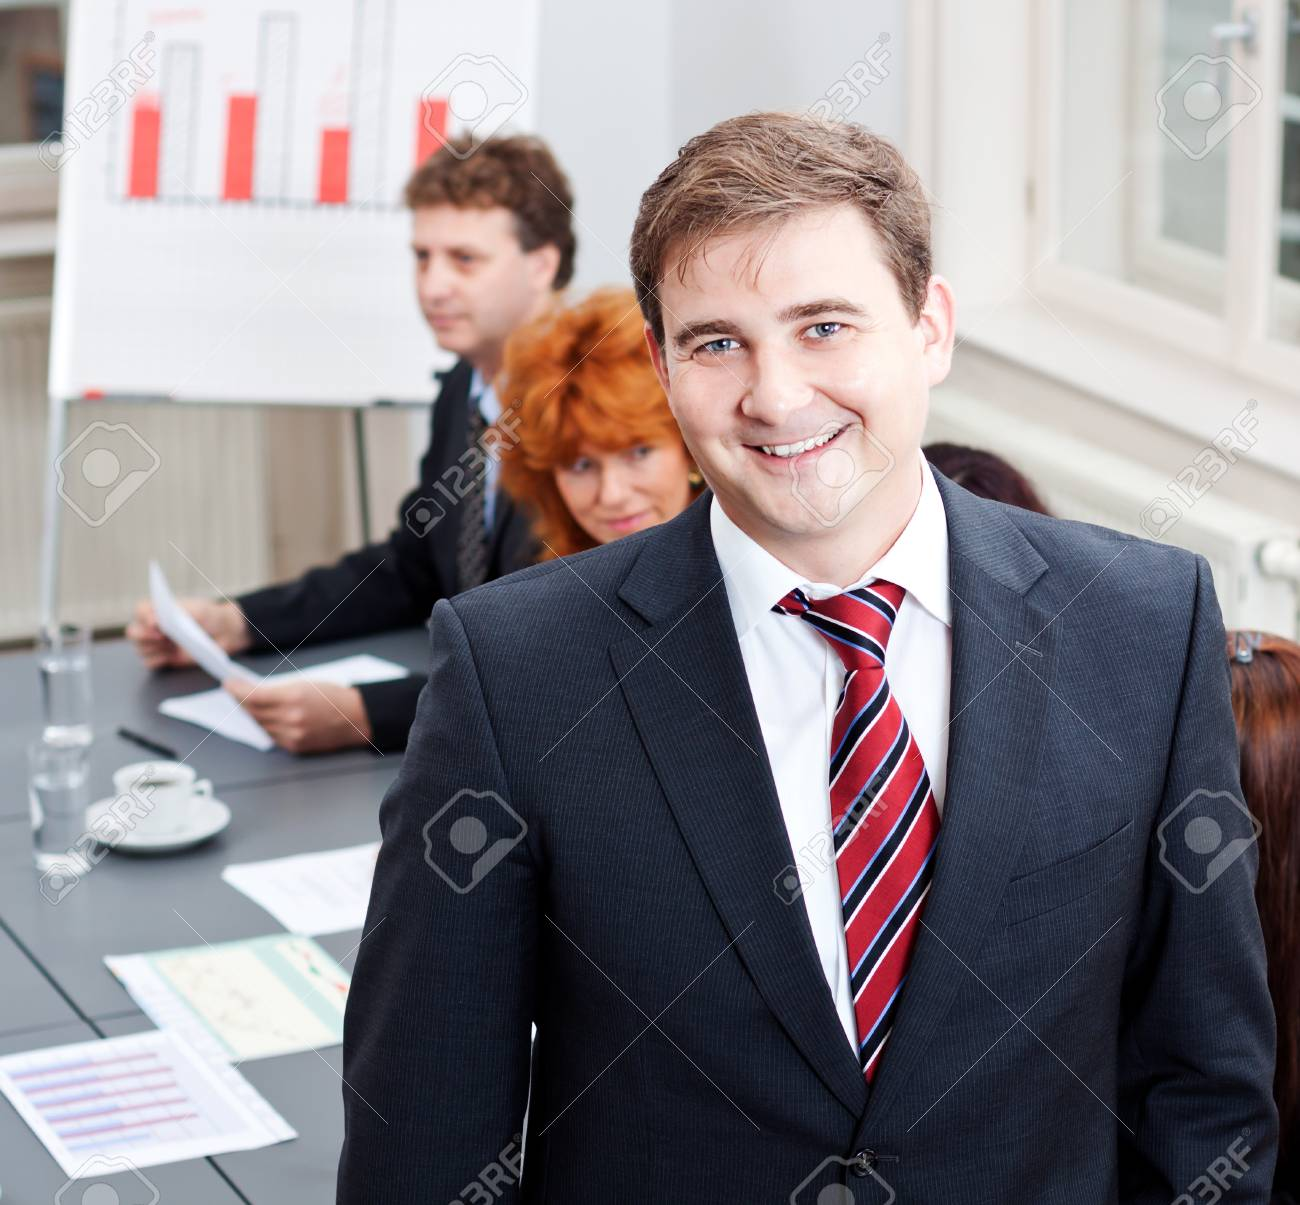 successful business smiling man portrait at office with team in background Stock Photo - 17449158